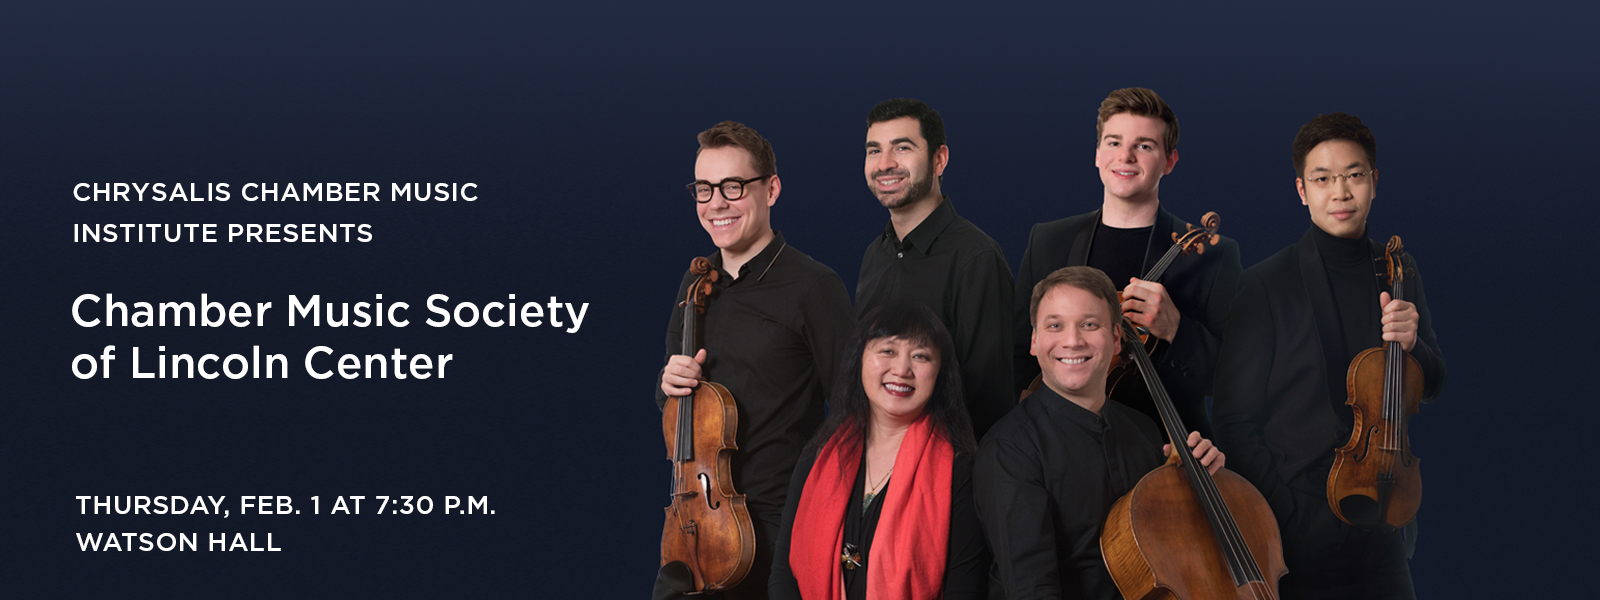 Hear the renowned ensemble perform works by Dvorak and Brahms >> BUY TICKETS